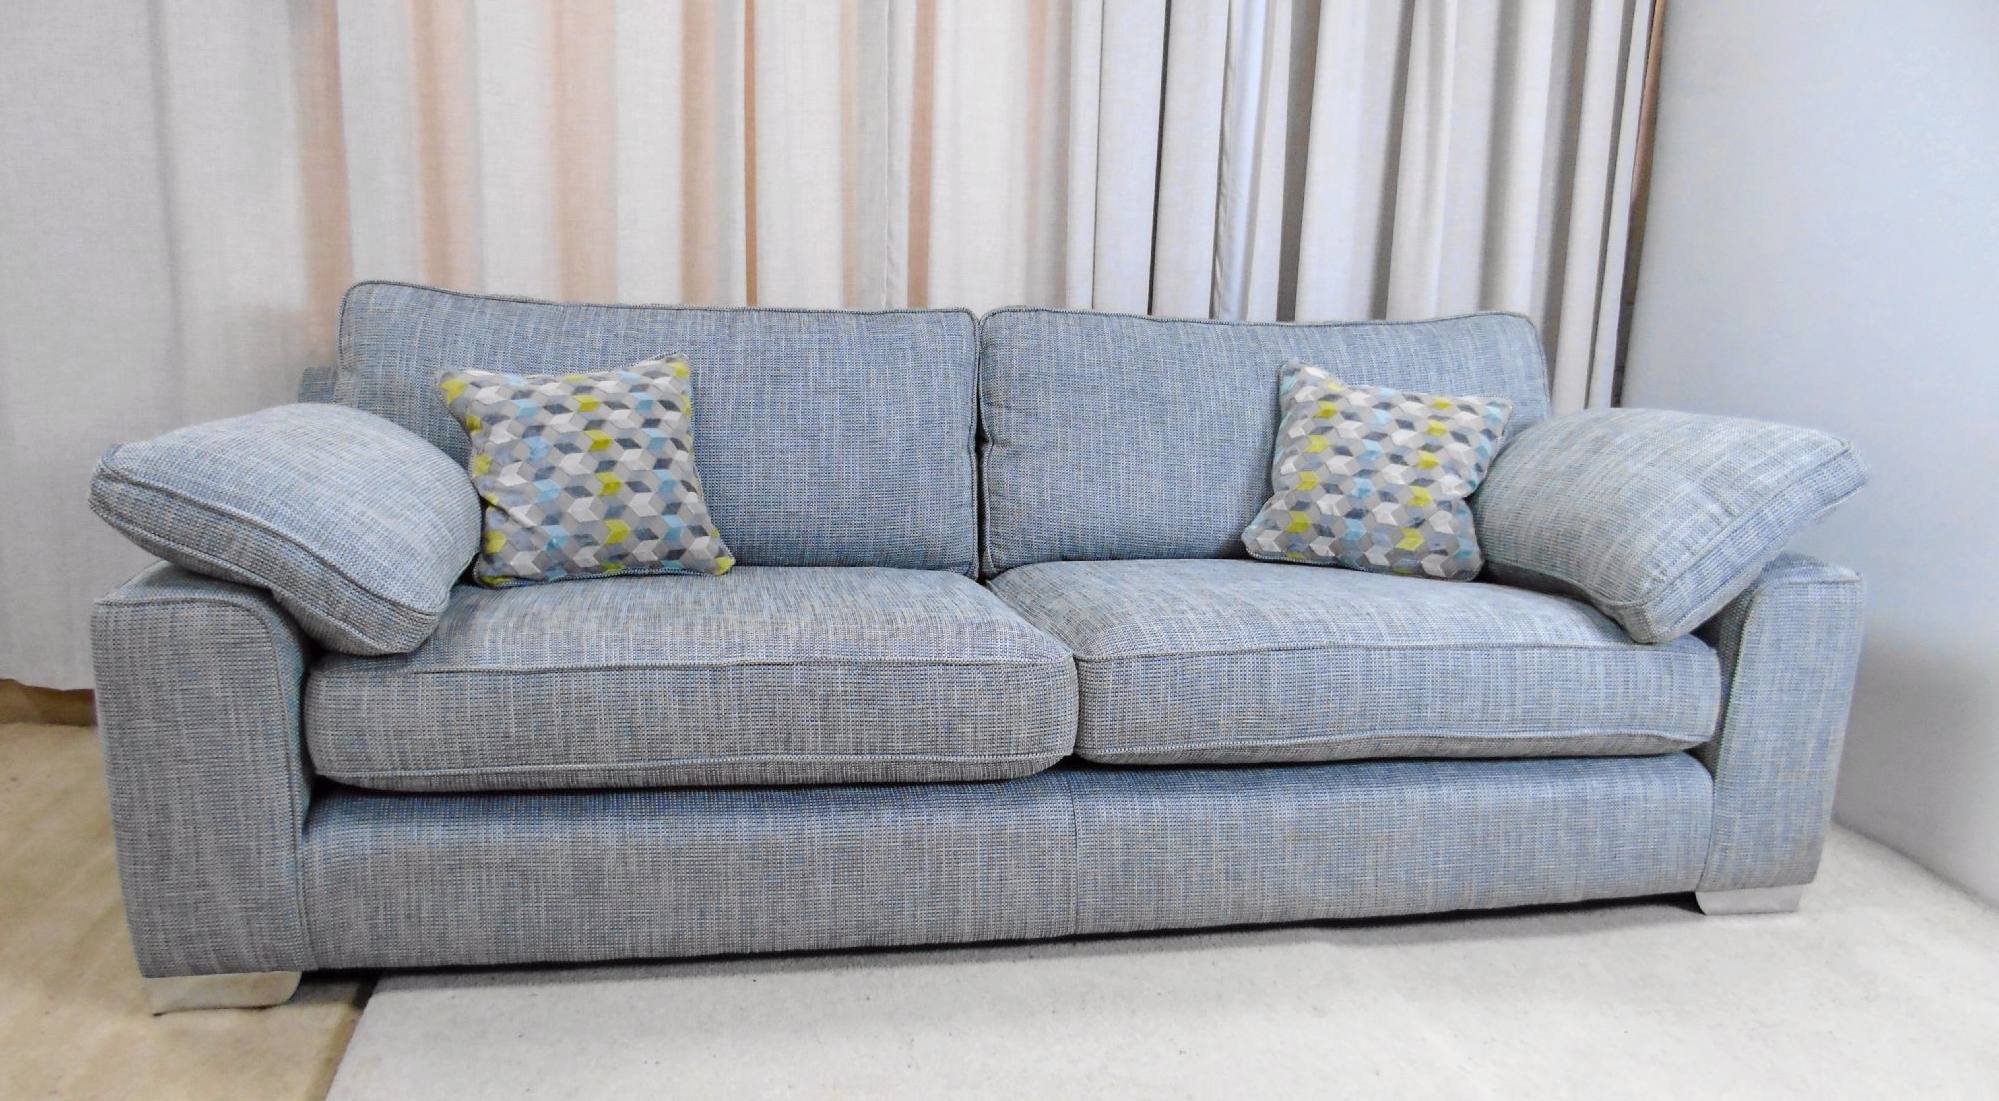 Widely Used Whitemeadow Loft Large 4 Seater Sofa For Large 4 Seater Sofas (View 20 of 20)